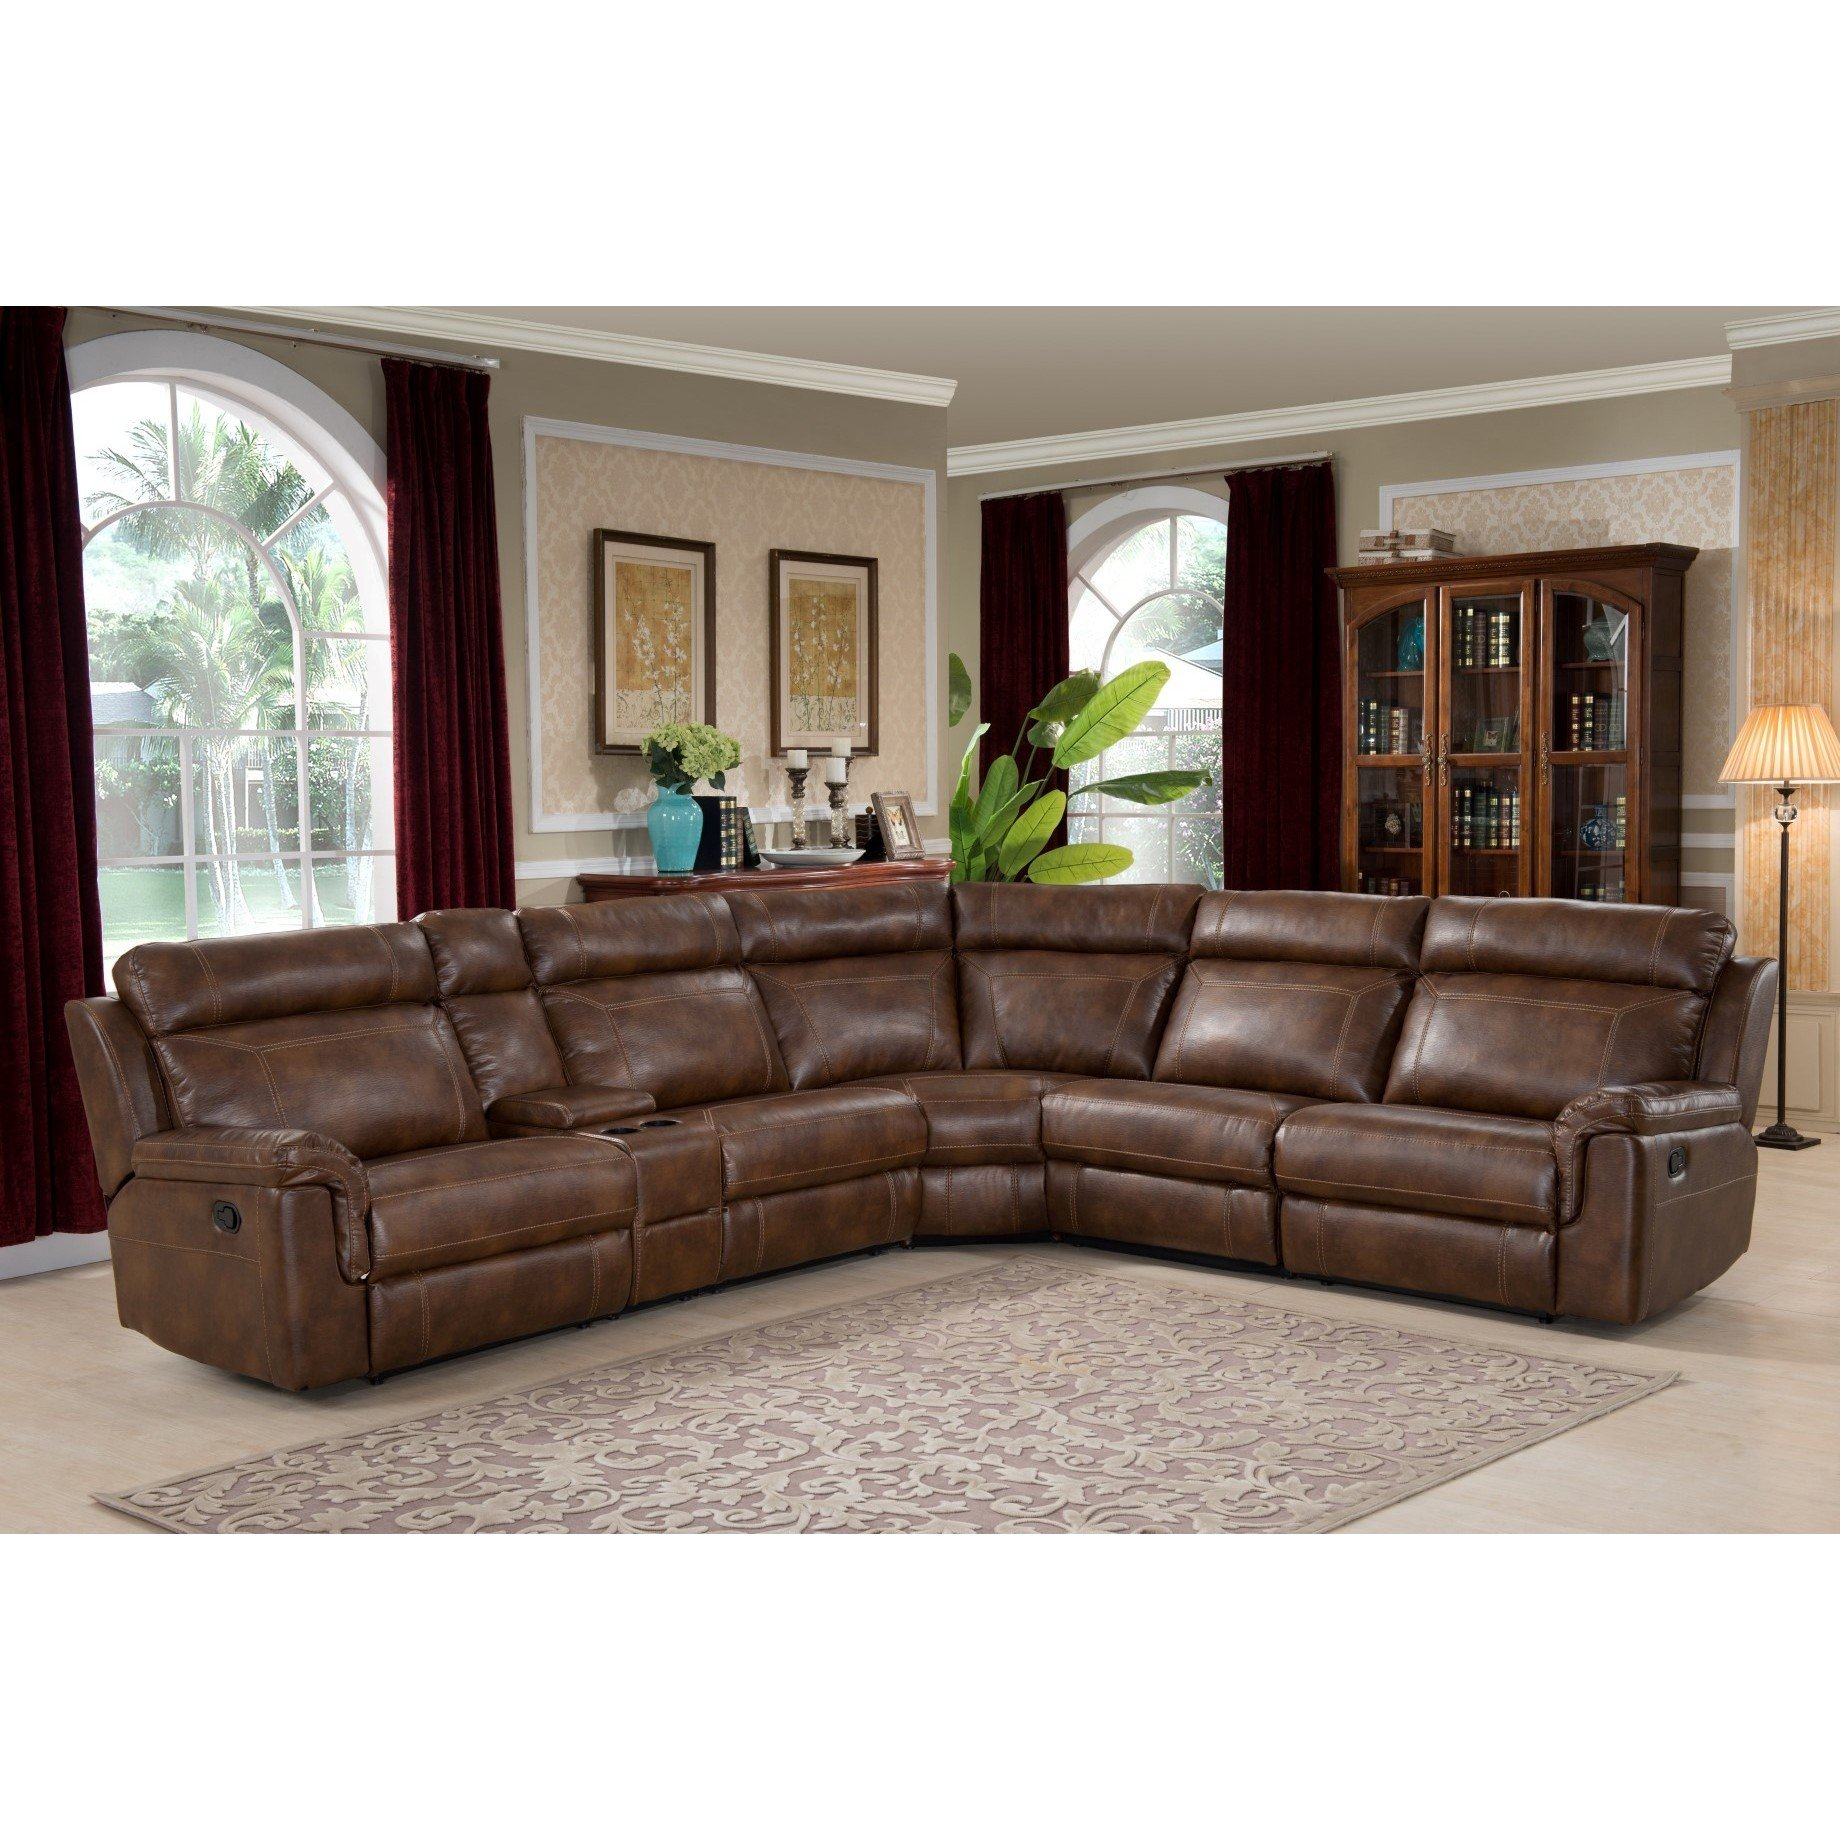 Shop Ac Pacific Clark Brown Polyesterwoodsteelfoam 6 Piece in 13 Smart Designs of How to Makeover 6 Piece Living Room Set